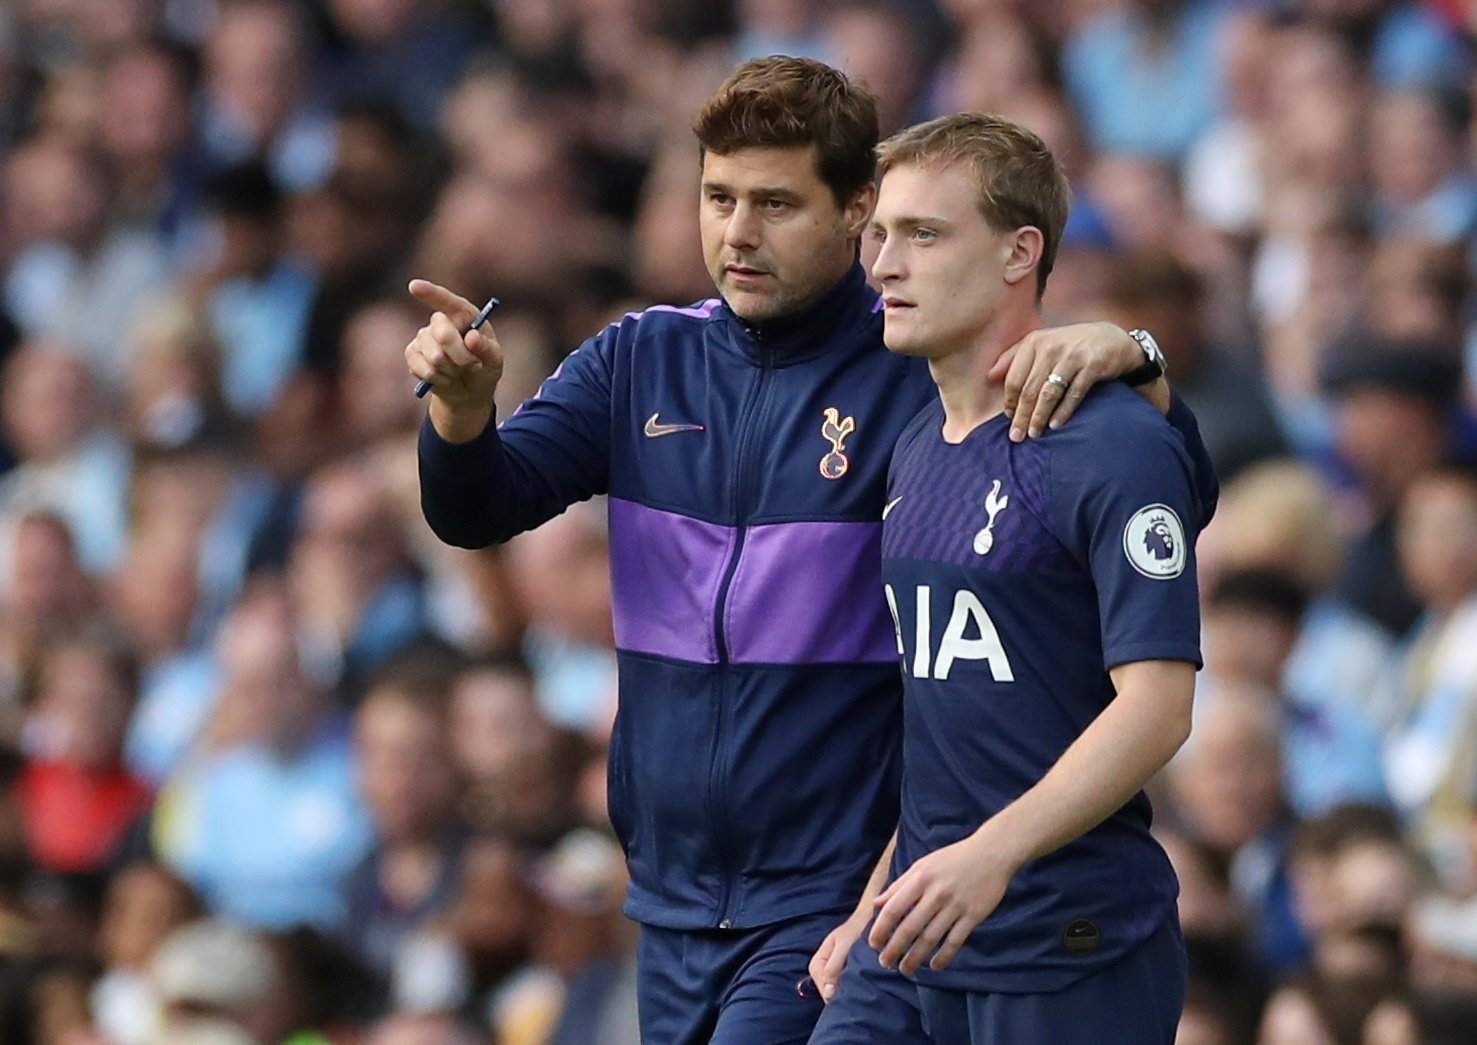 Tottenham Hotspur: Oliver Skipp likely to be offered new deal